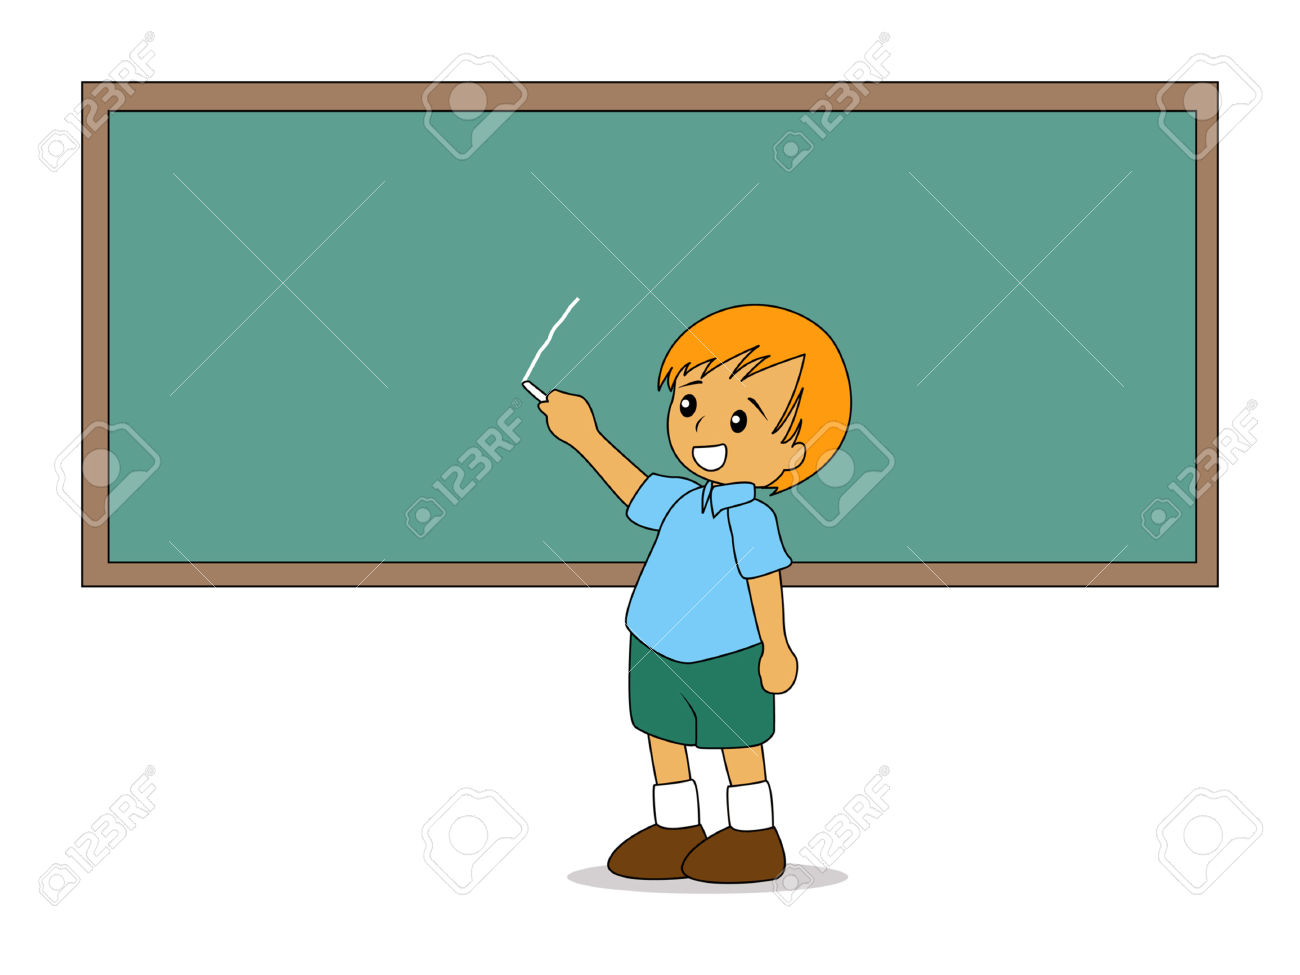 1830406-Illustration-of-a-Kid-writing-on-the-Board-Stock-Vector-board-school